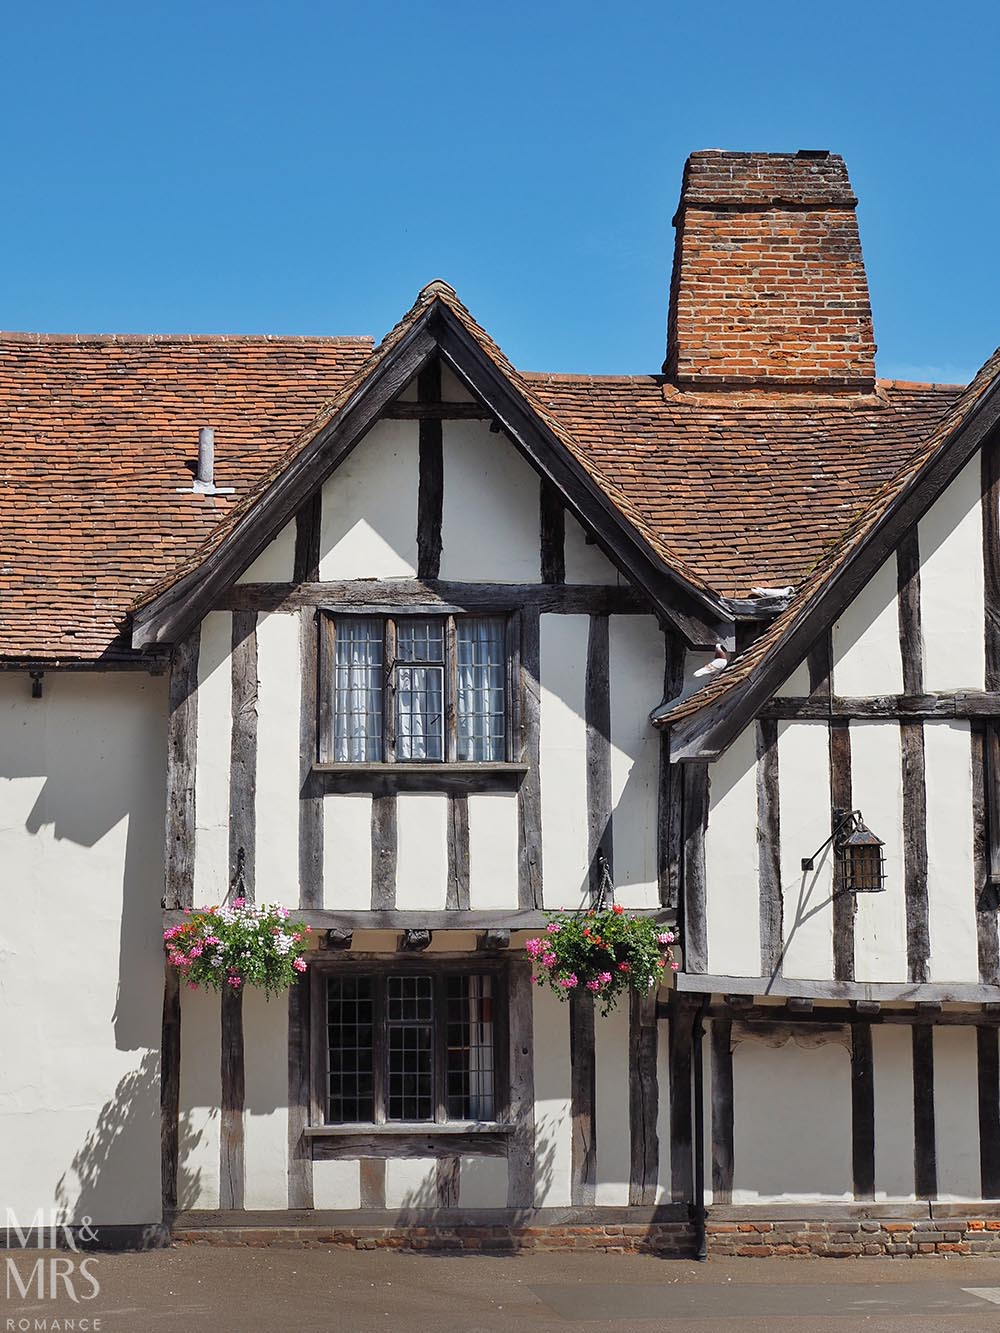 Out of London - Lavenham, Suffolk - Britain's finest Medieval village - The Swan at Lavenham